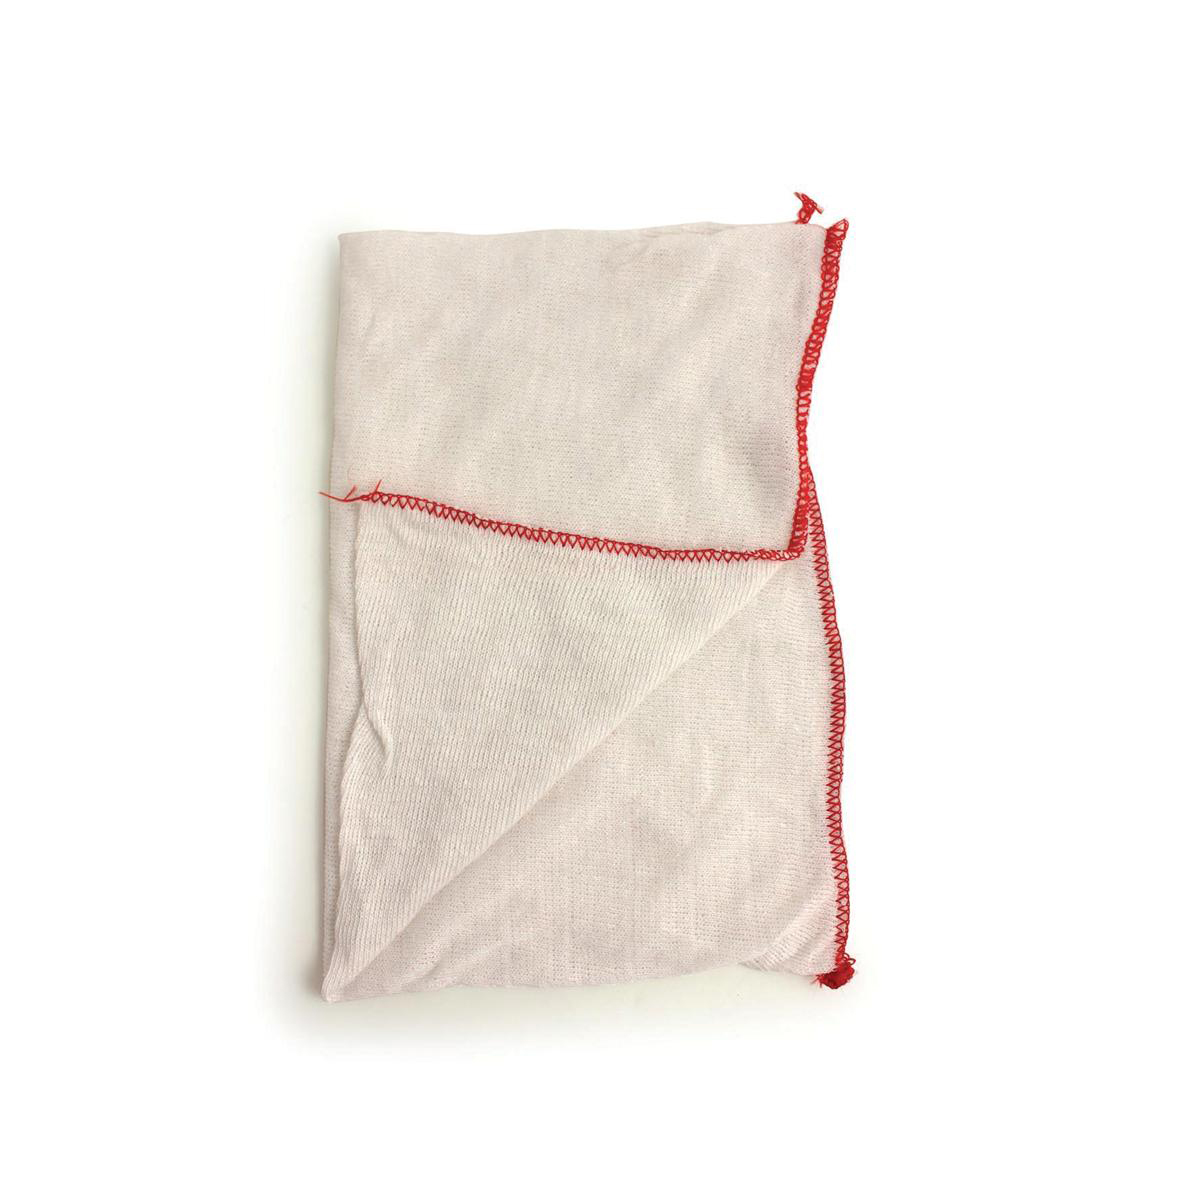 Stockinette Dish Cloths 305x405mm White With A Red Trim Pk20